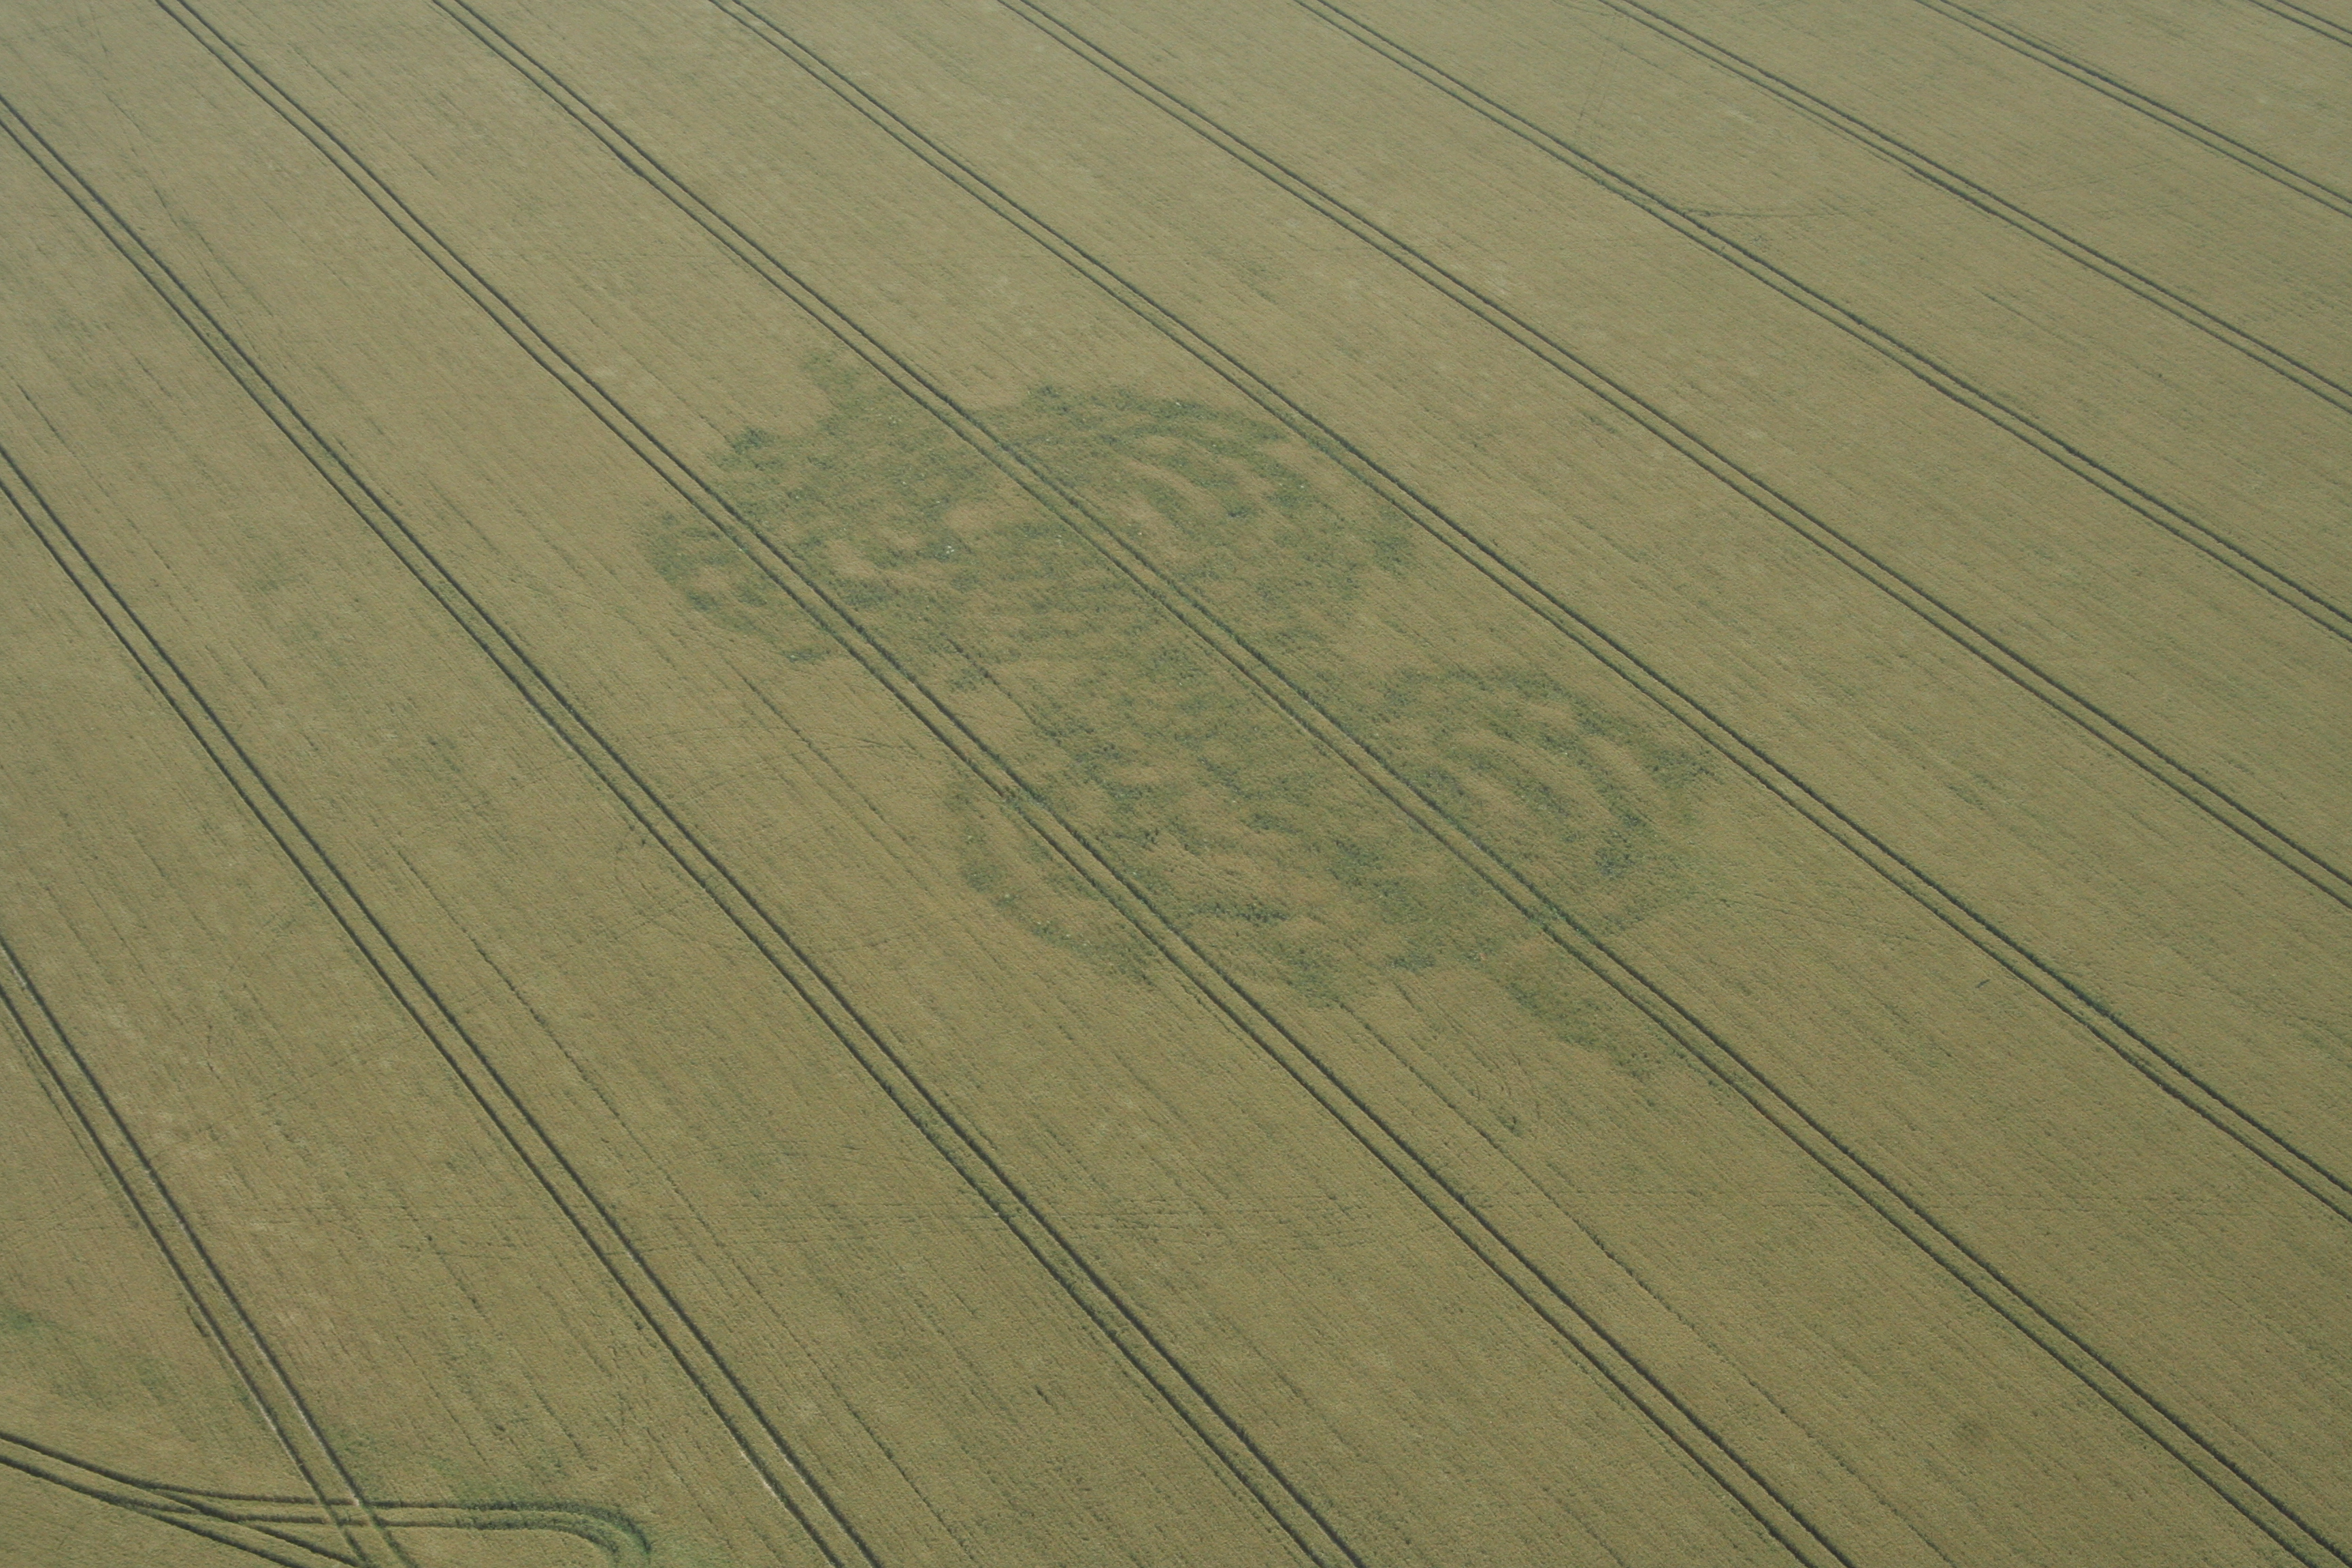 crop_circle_flight-080